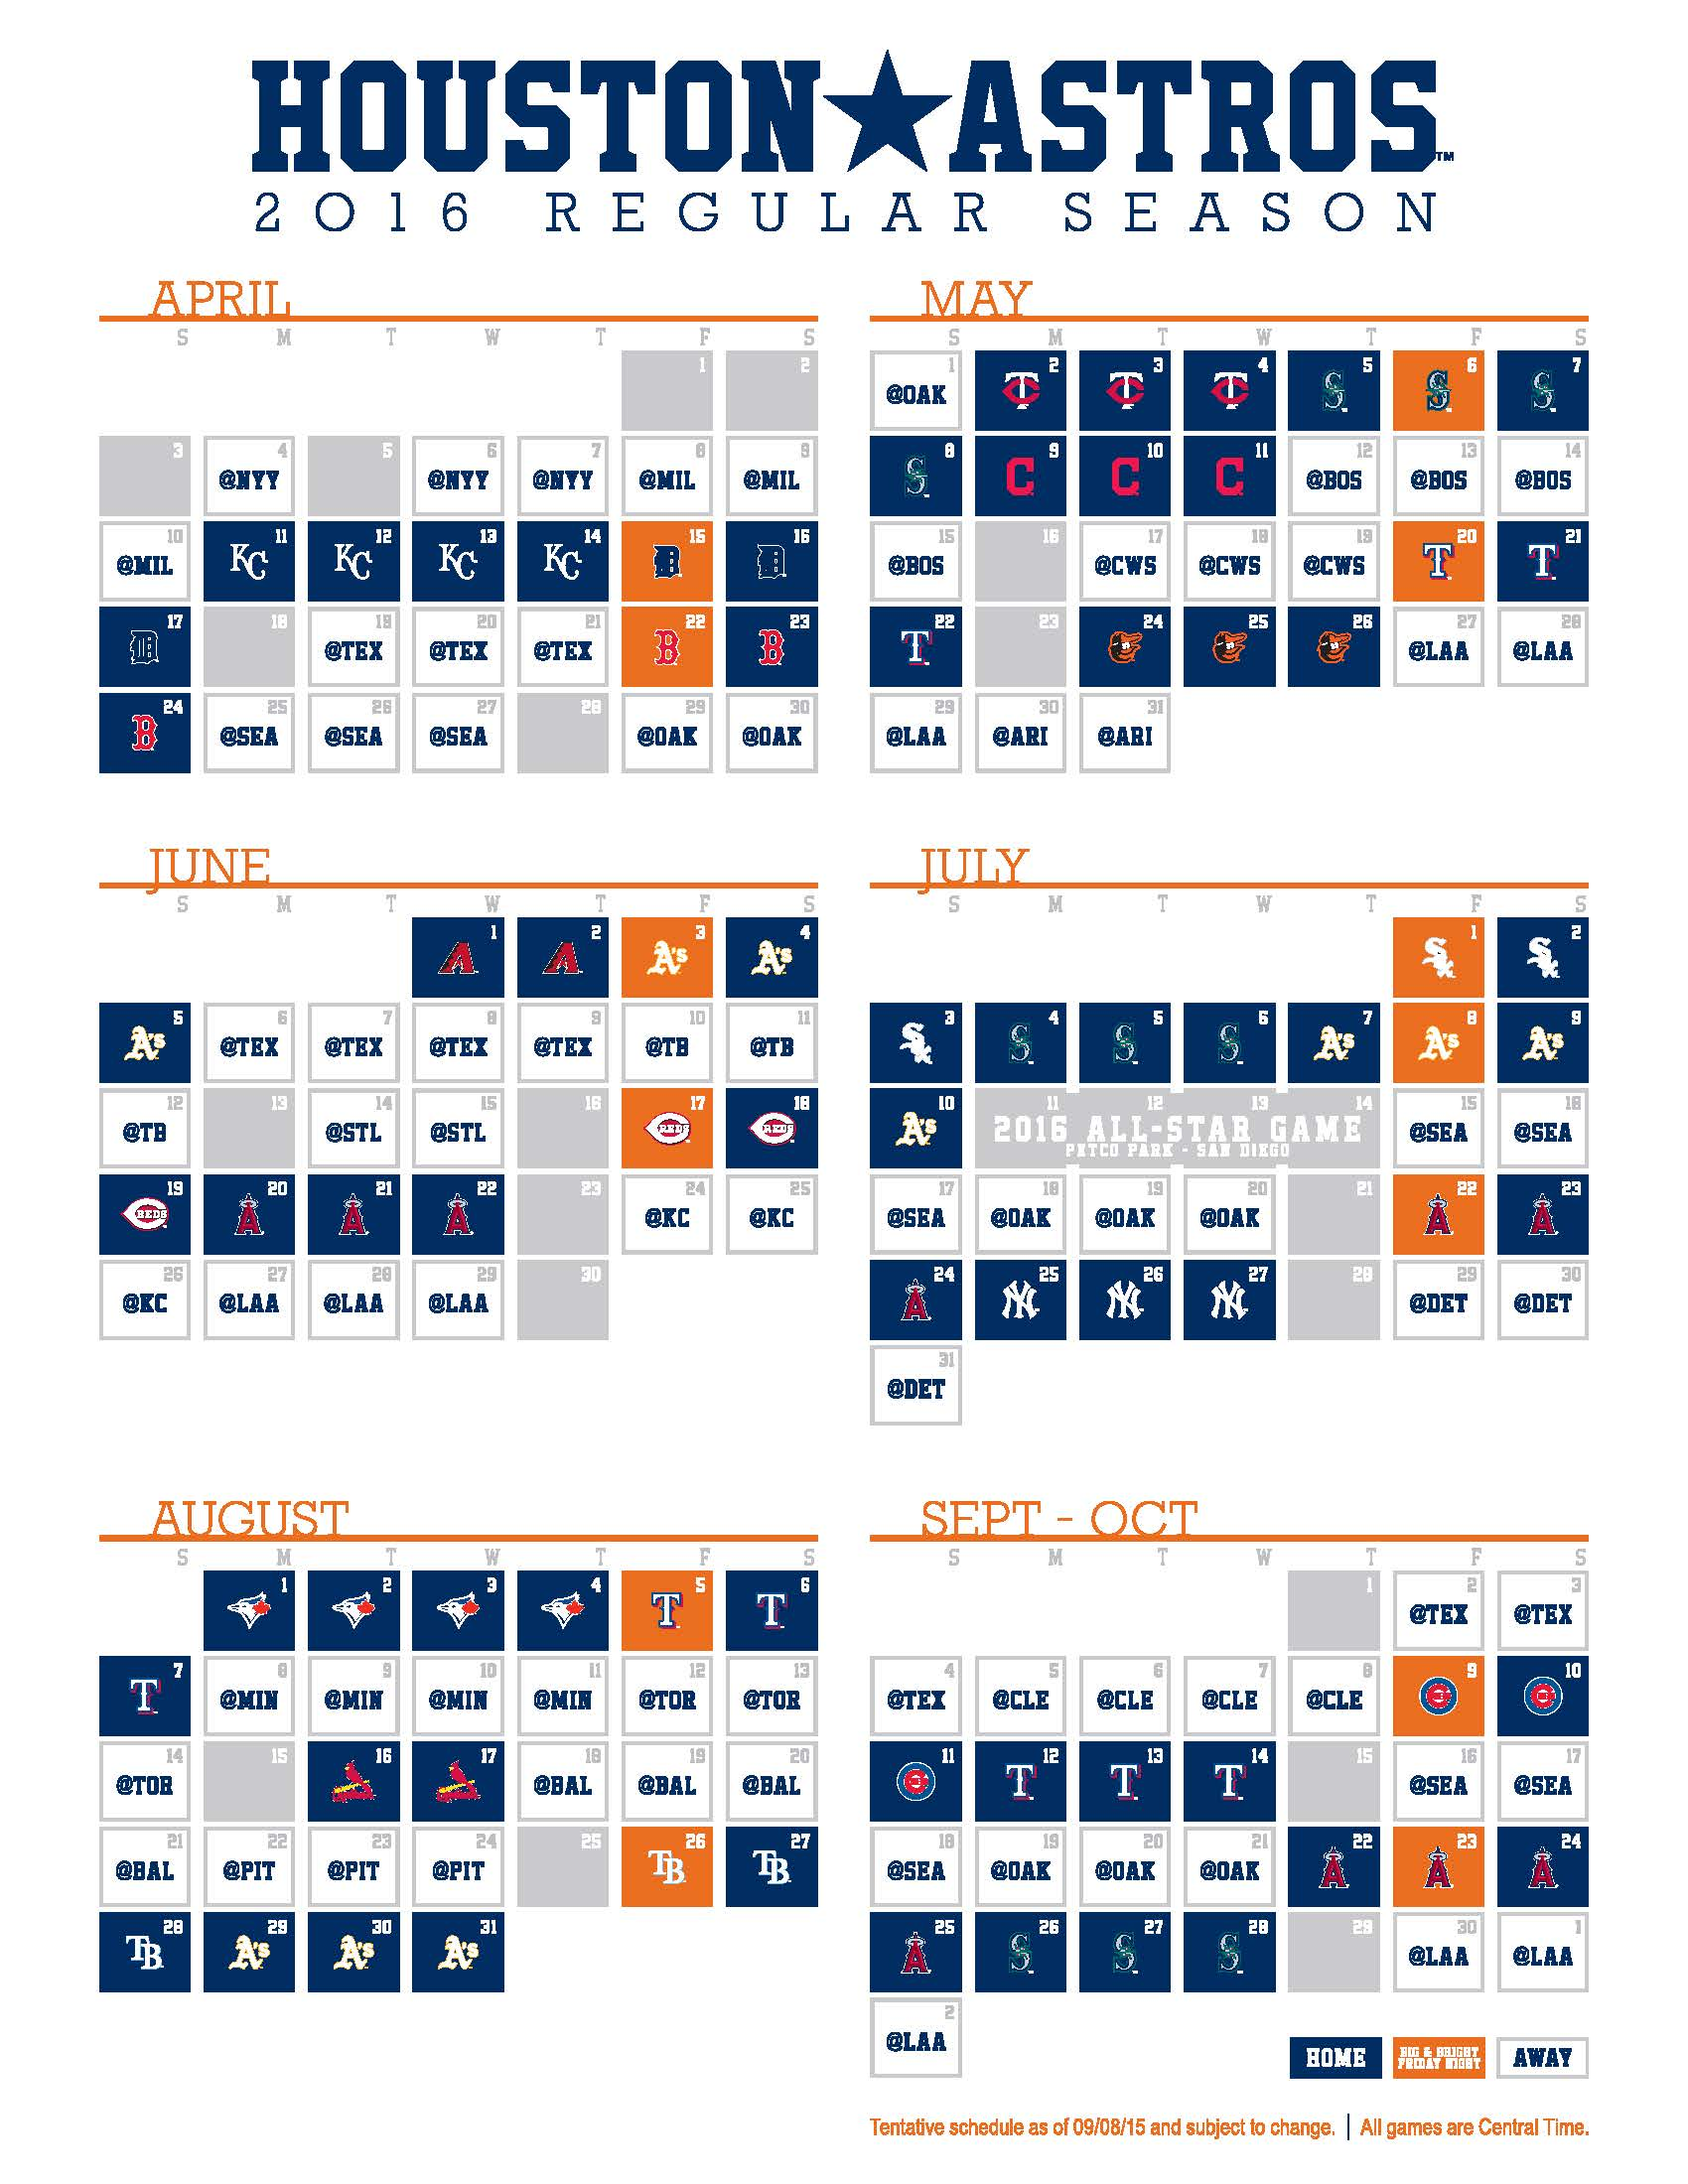 Astros release 2016 schedule - The Crawfish Boxes